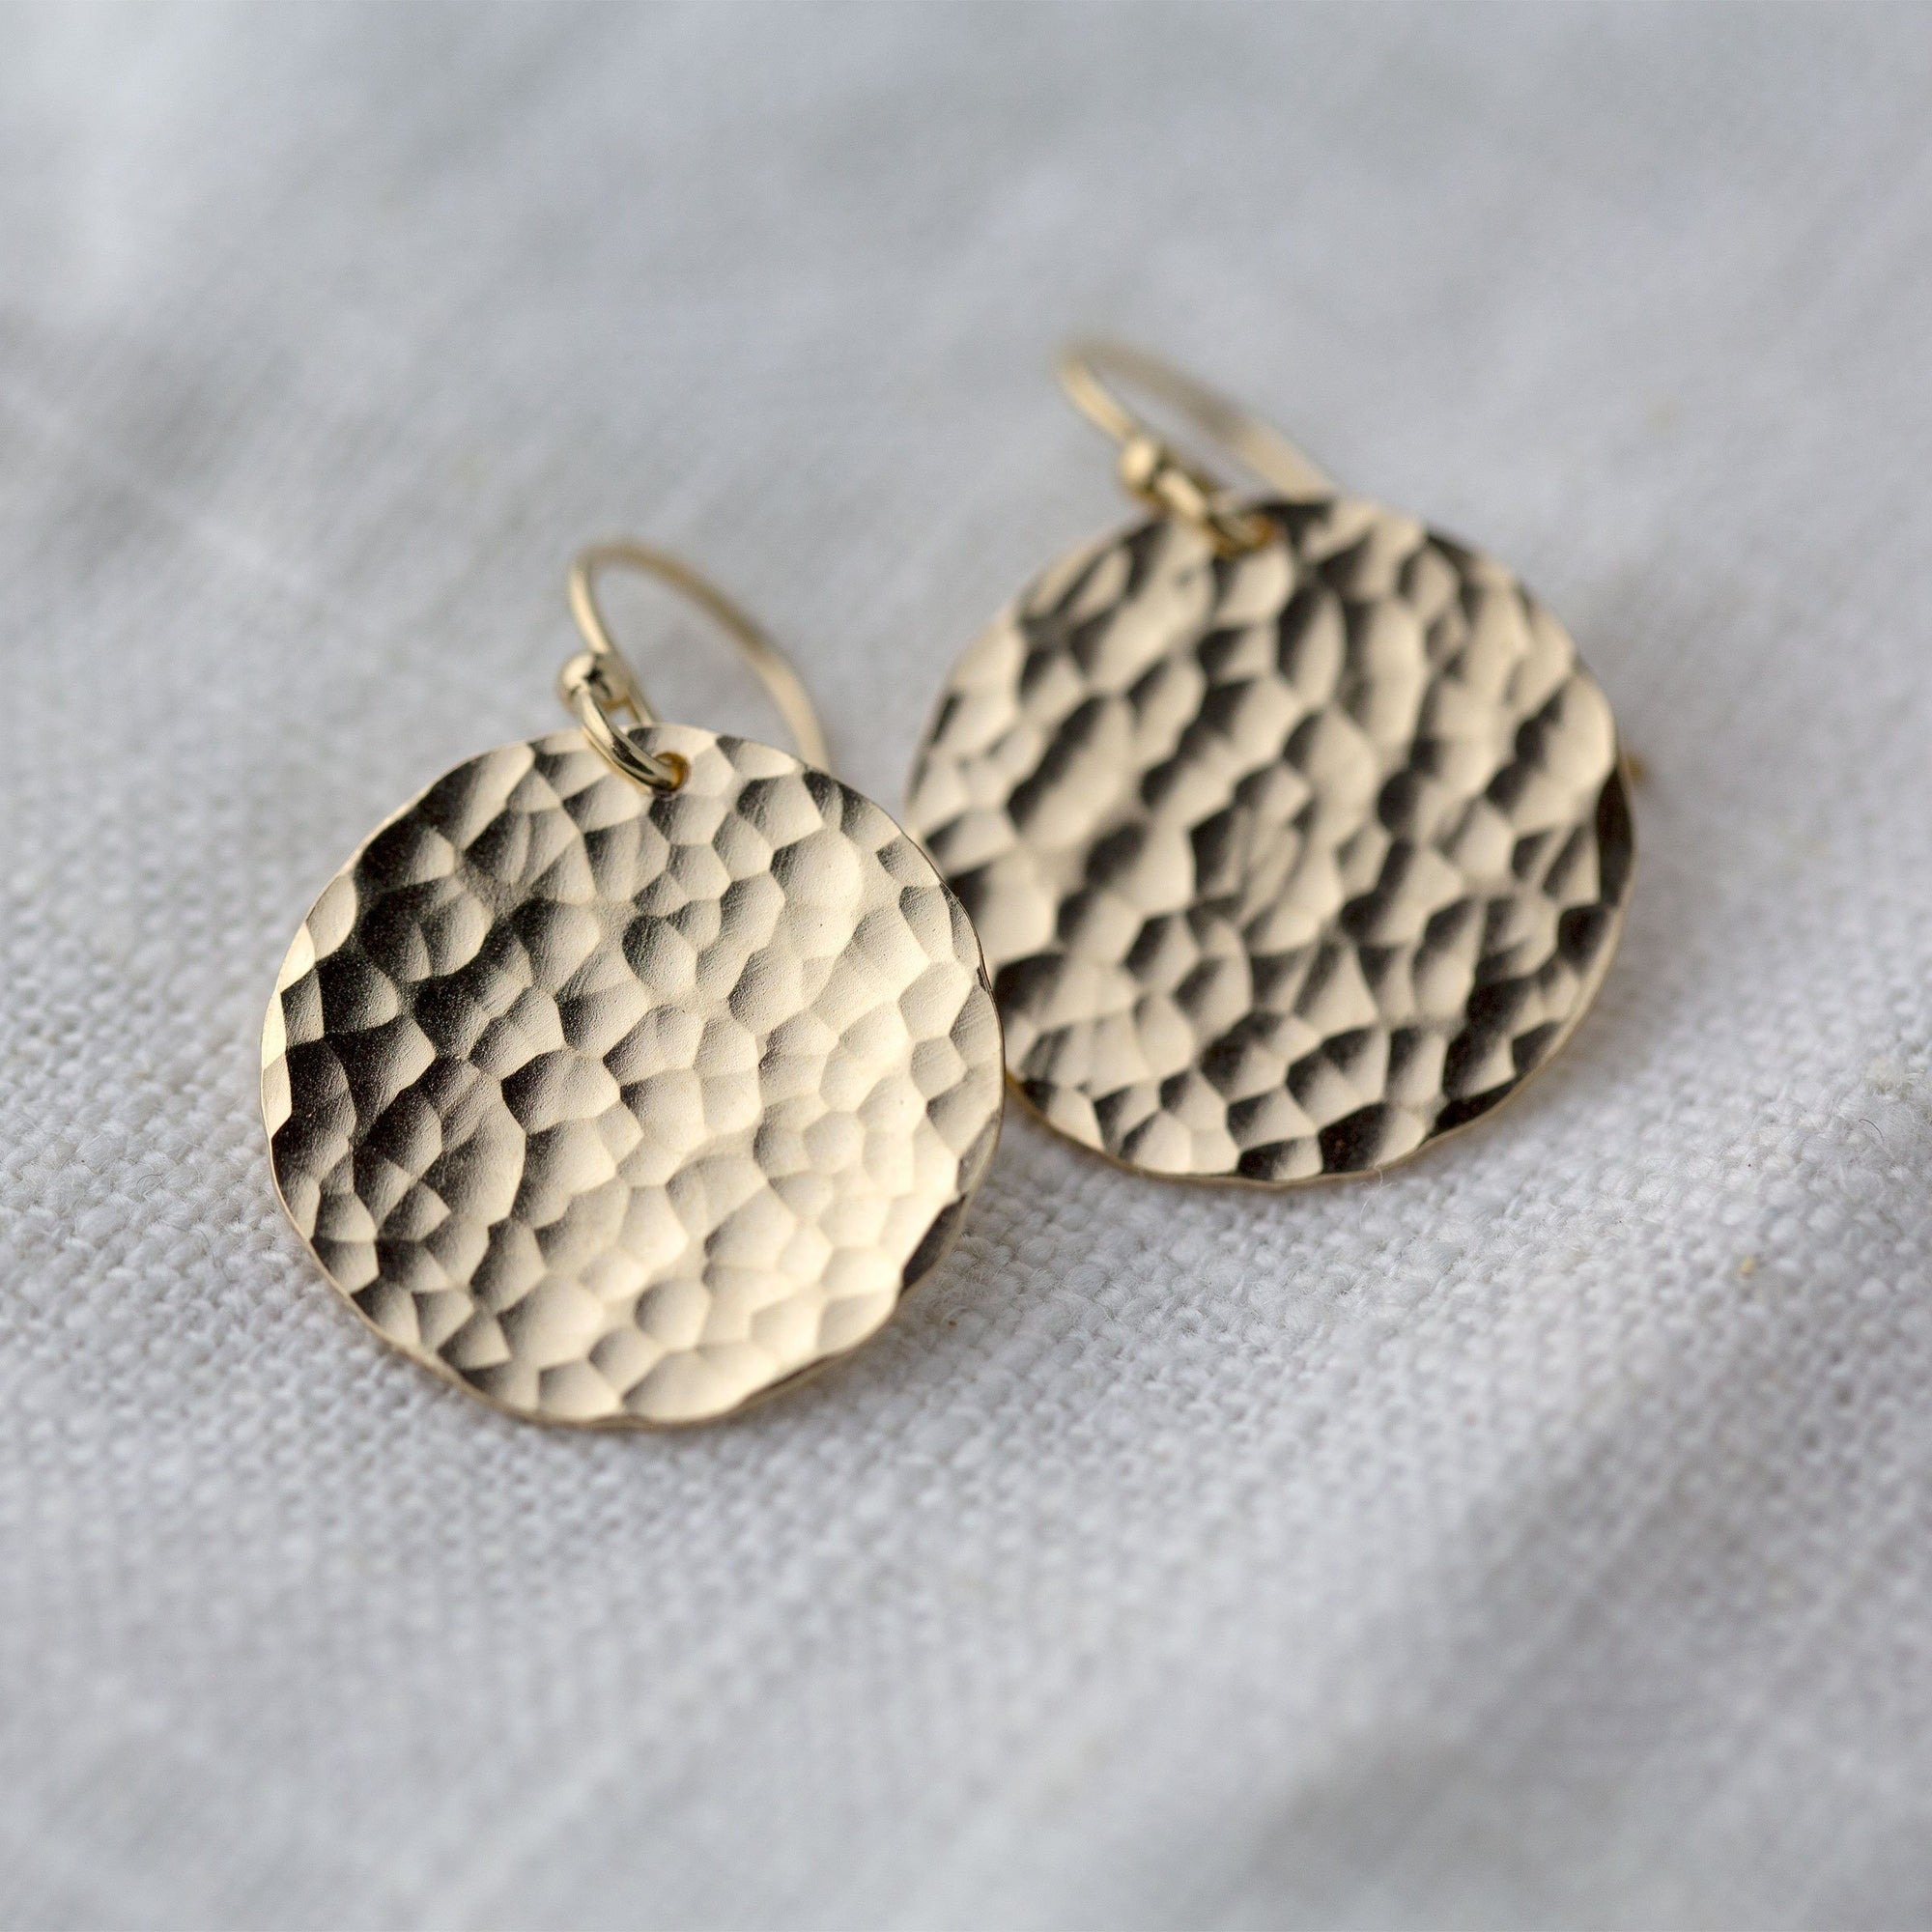 Large Hammered Gold Disk Earrings - Handmade Jewelry by Burnish